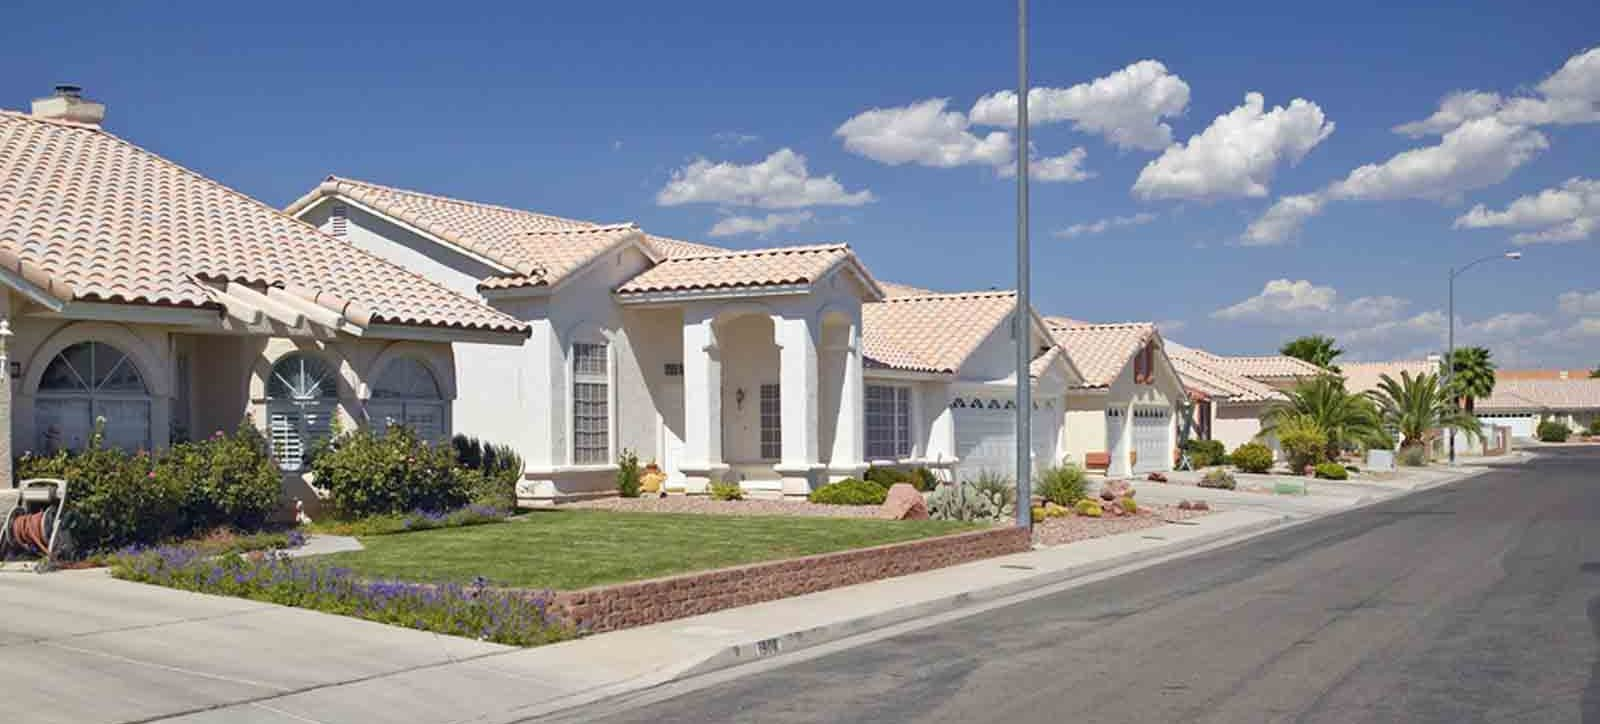 Las Vegas Homes for Sale view2